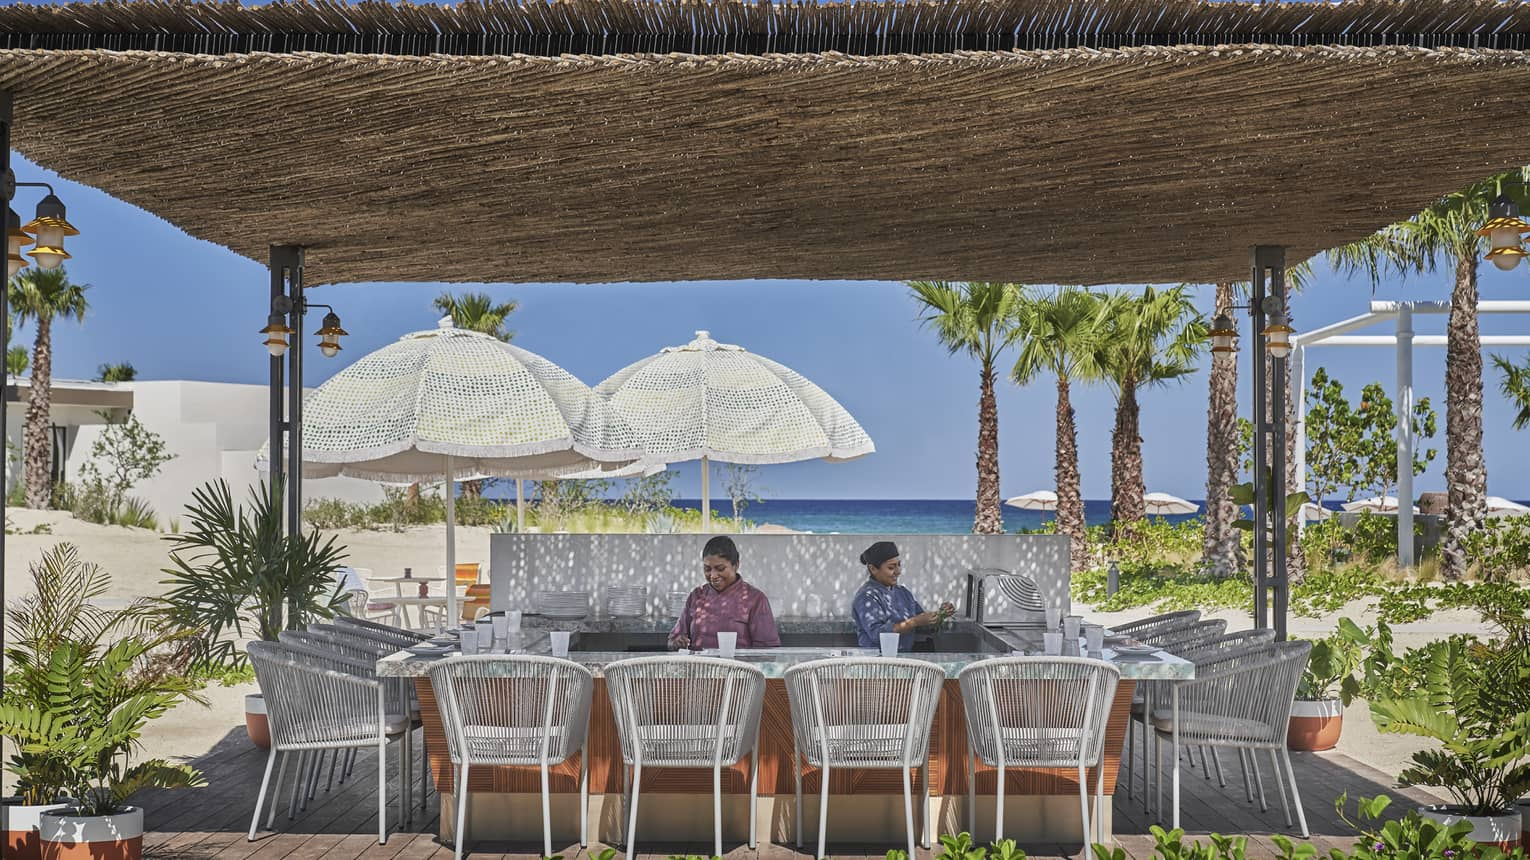 Two staff members behind beach bar with thatched roof, white rattan chairs, water view